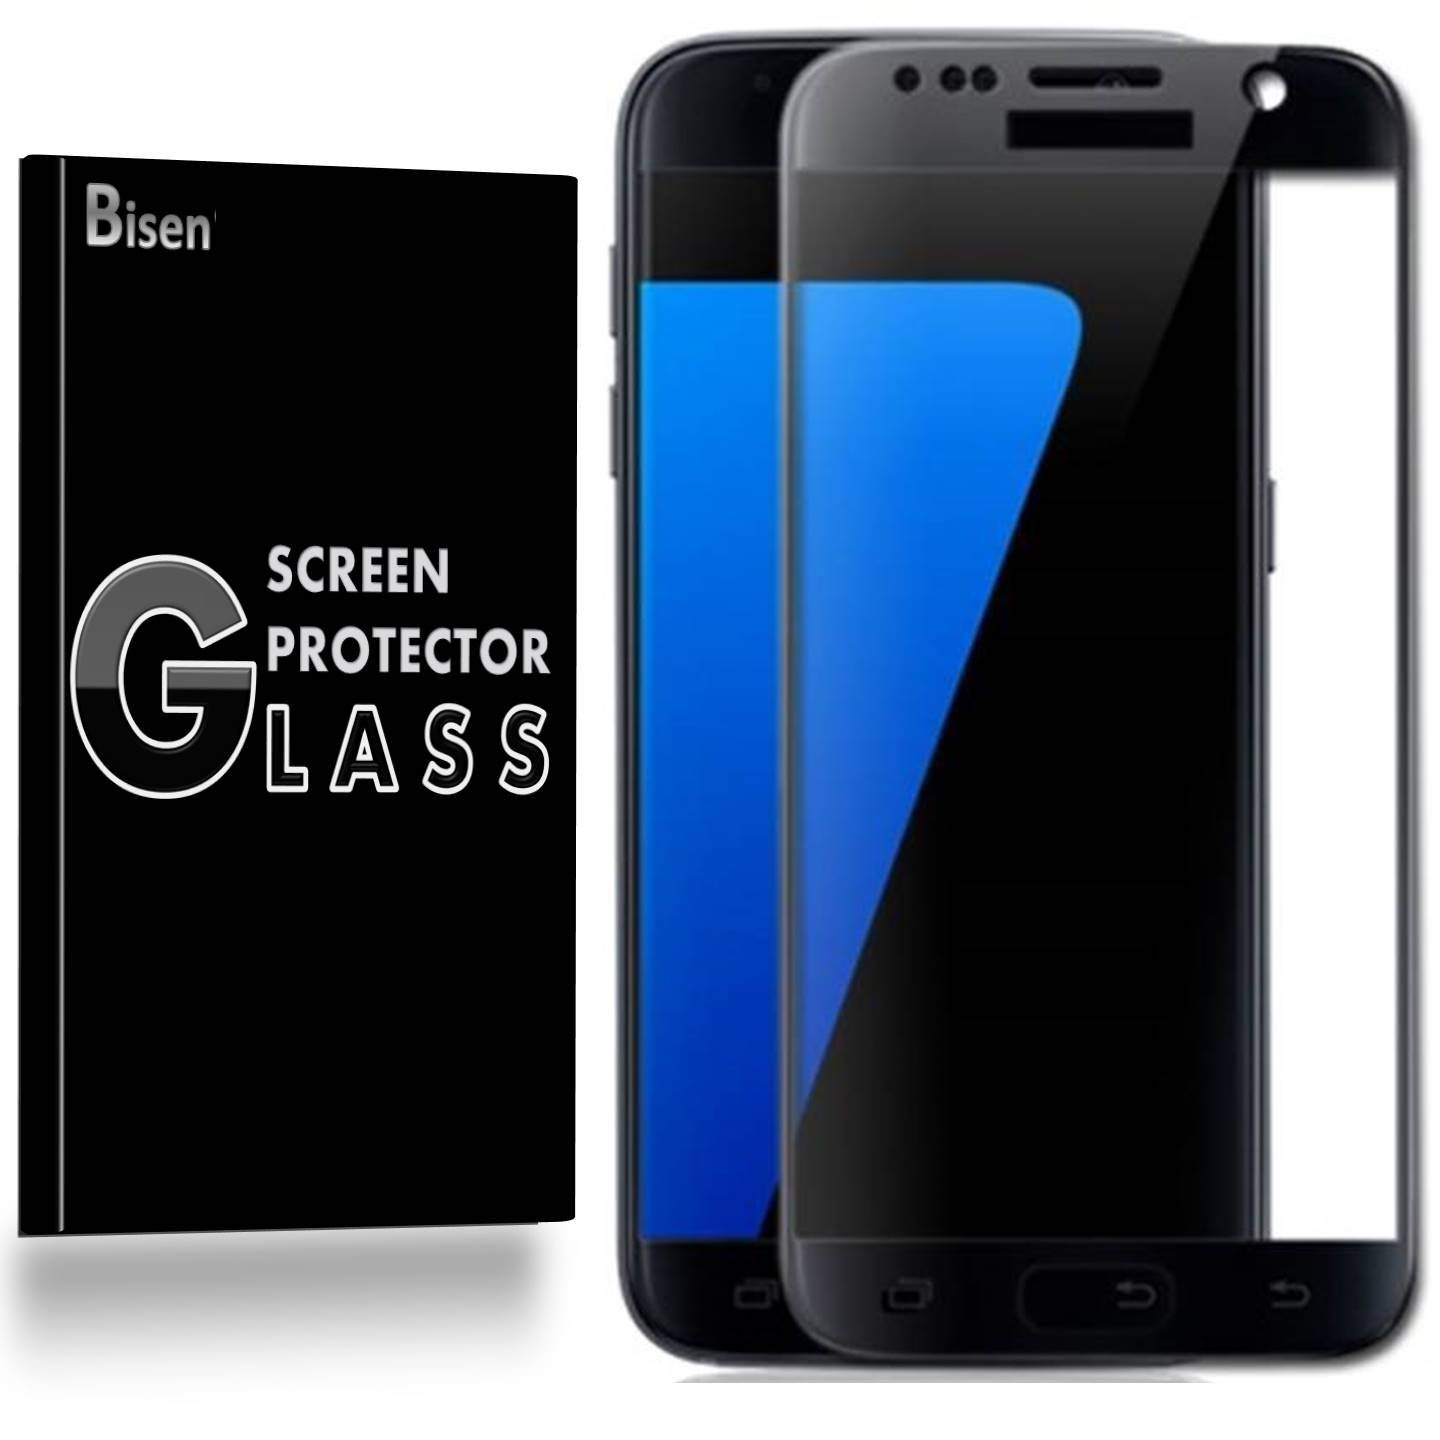 Samsung Galaxy S7 (2016 Release) [BISEN] 9H [Full Cover] Tempered Glass Screen Protector, Edge-To-Edge, Anti-Shock, Shatterproof, Bubble Free [Black]